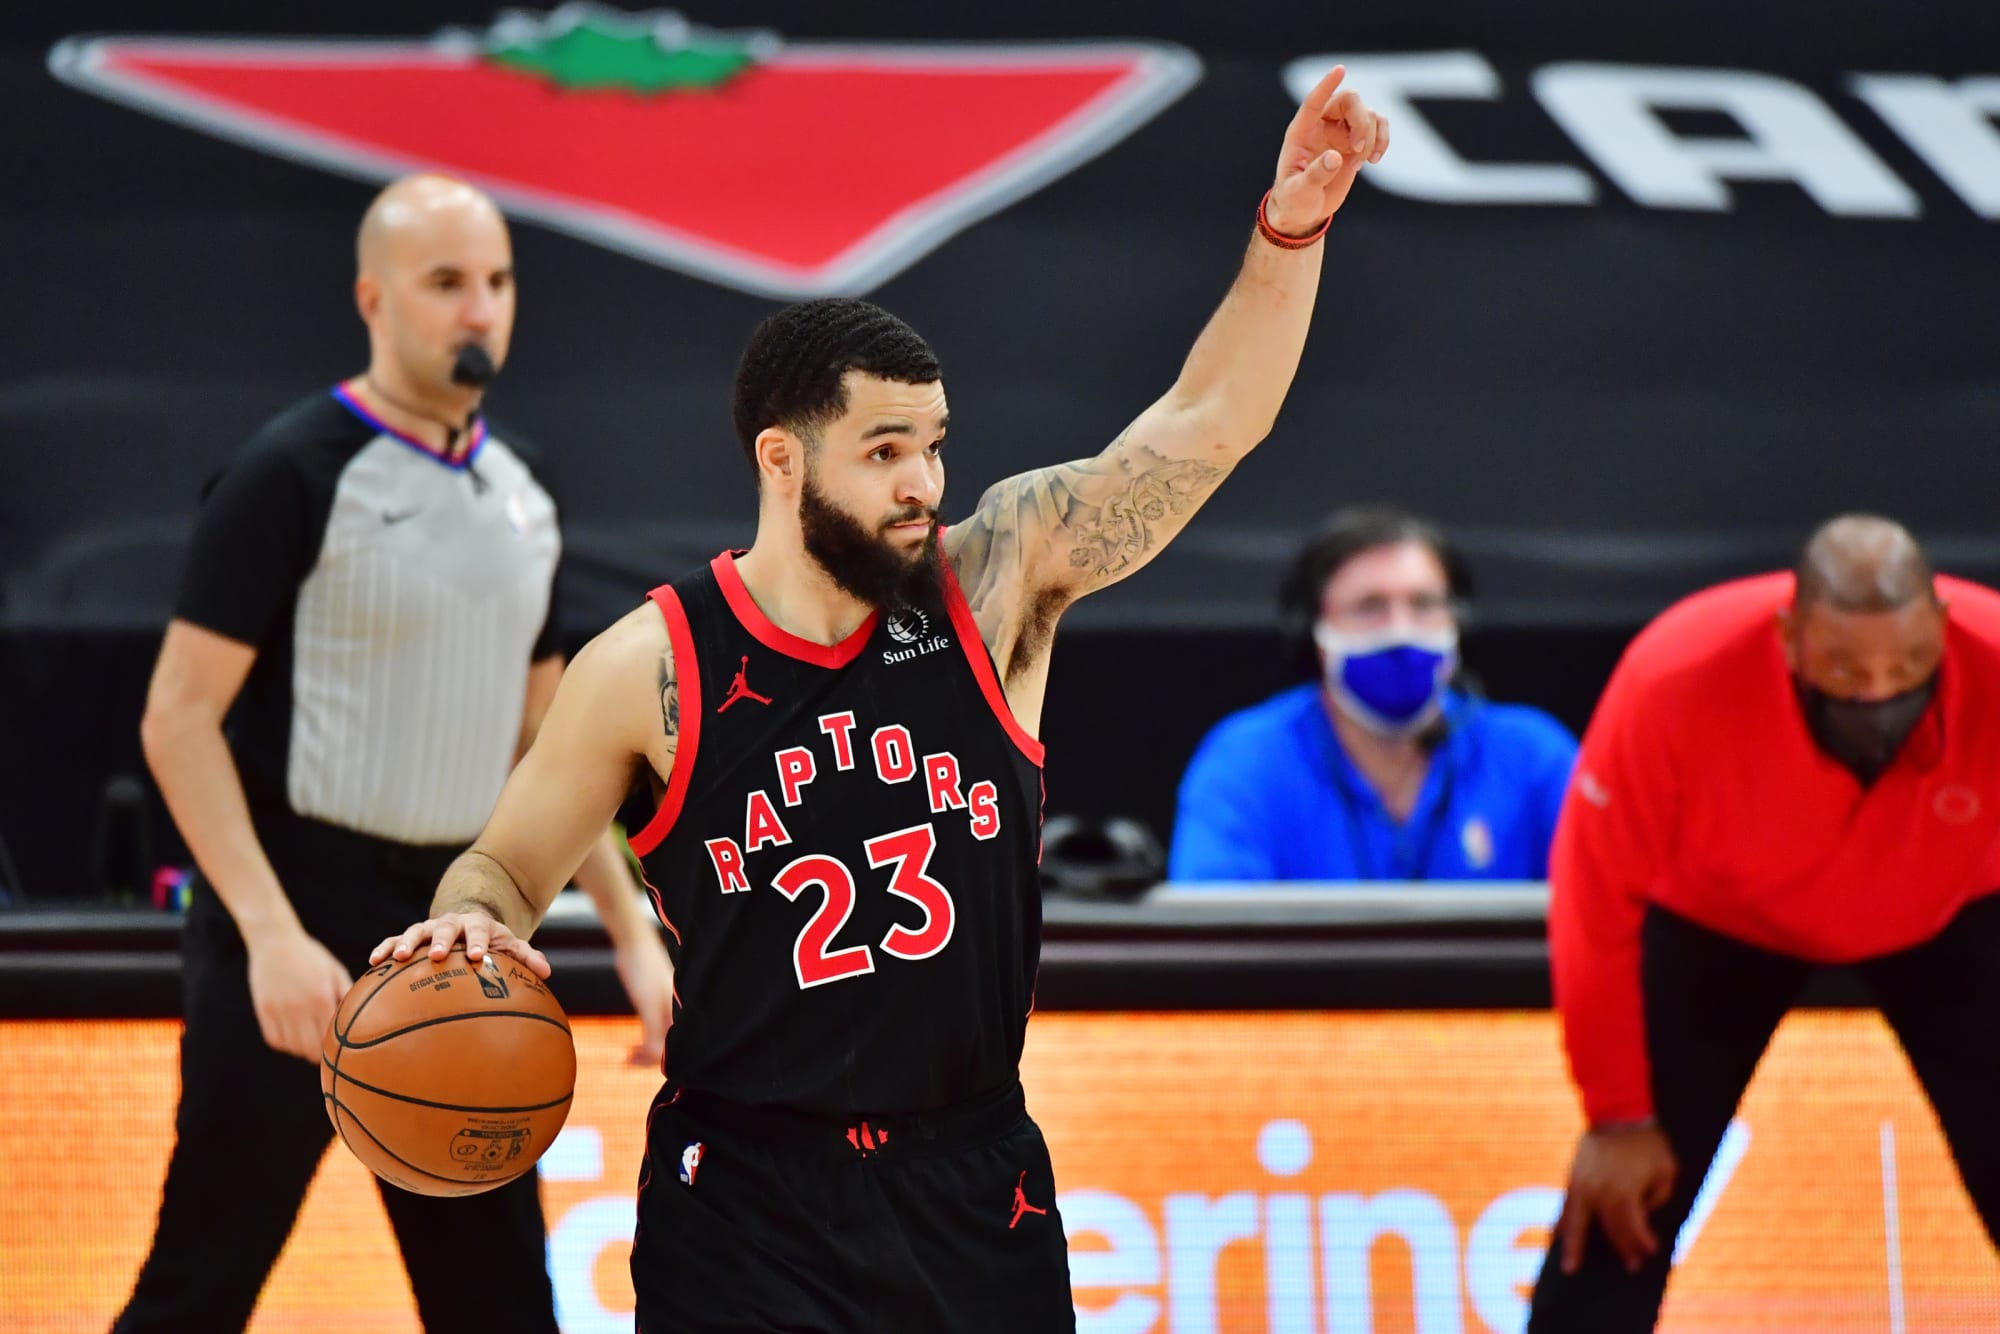 Toronto Raptors: Fred VanVleet discusses COVID-19 recovery, rips replacements